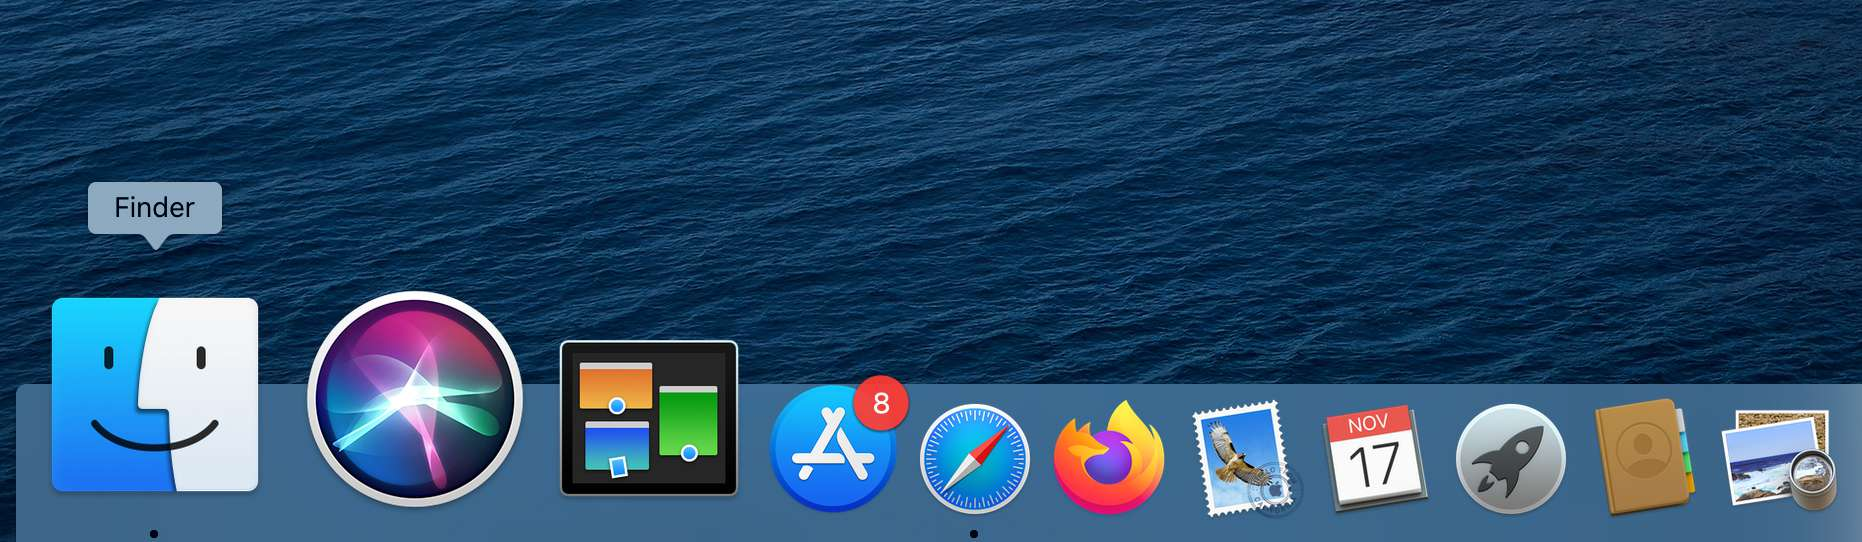 Mac Dock showing the Finder